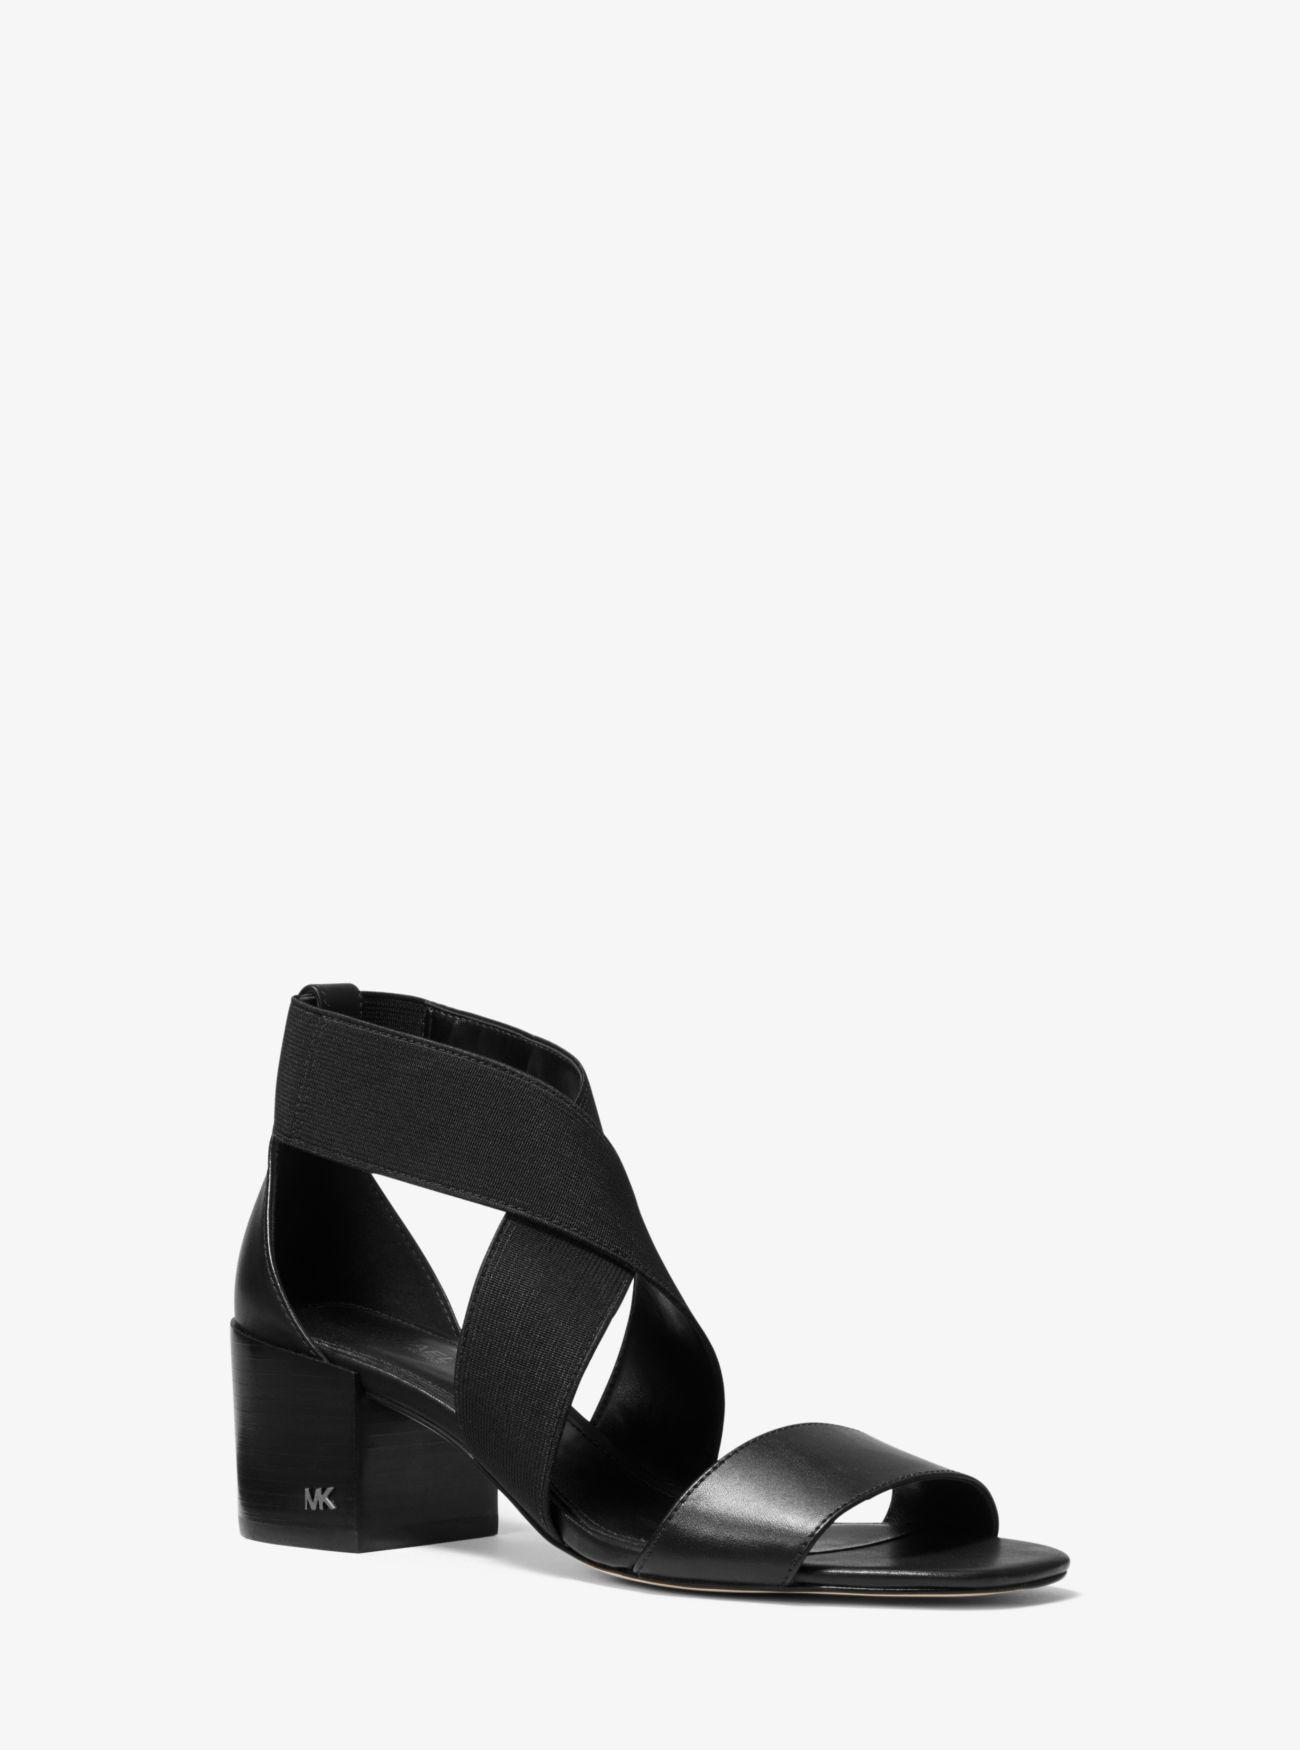 0dd0331cba5 Lyst - MICHAEL Michael Kors Meadow Elastic And Leather Sandal in Black